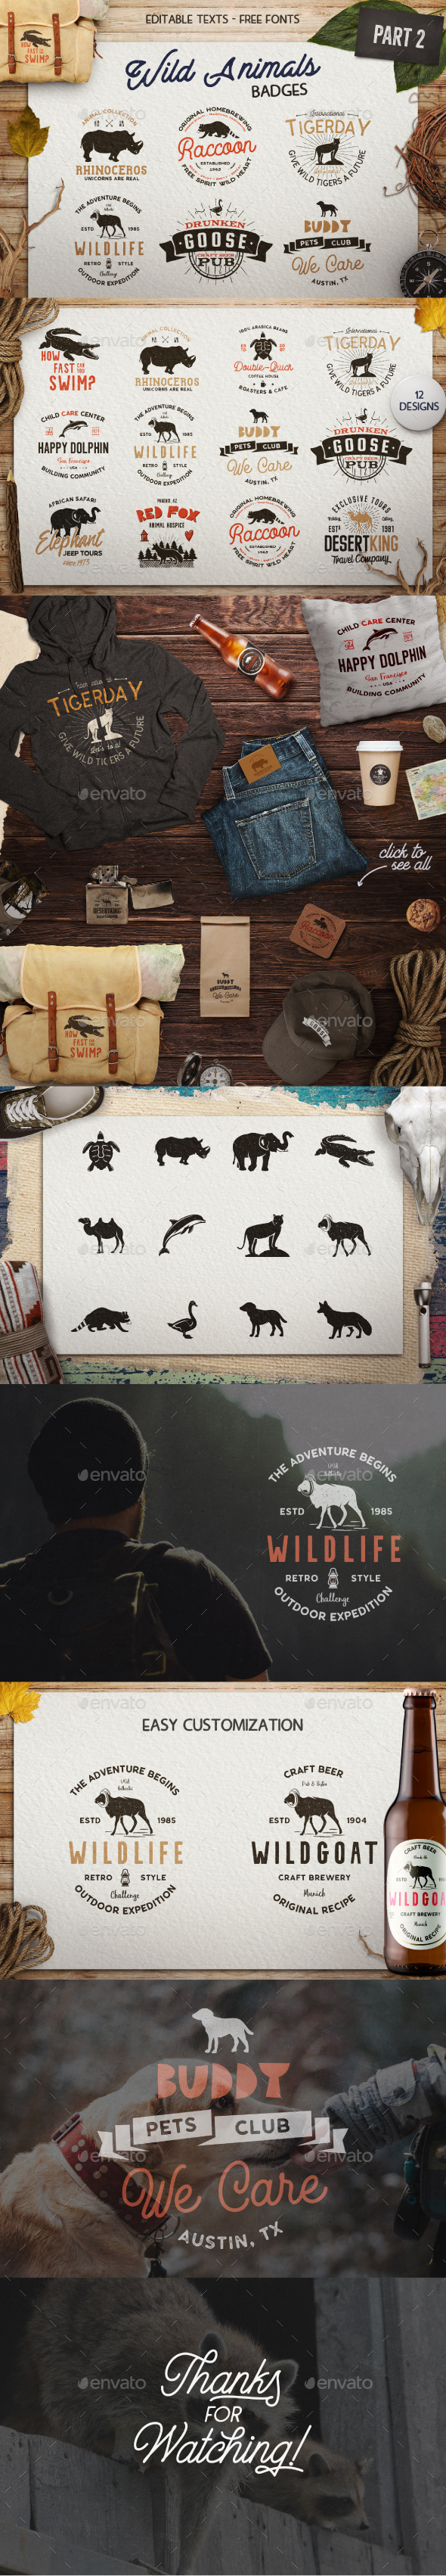 12 Wild Animals Badges [Part 2] - Badges & Stickers Web Elements